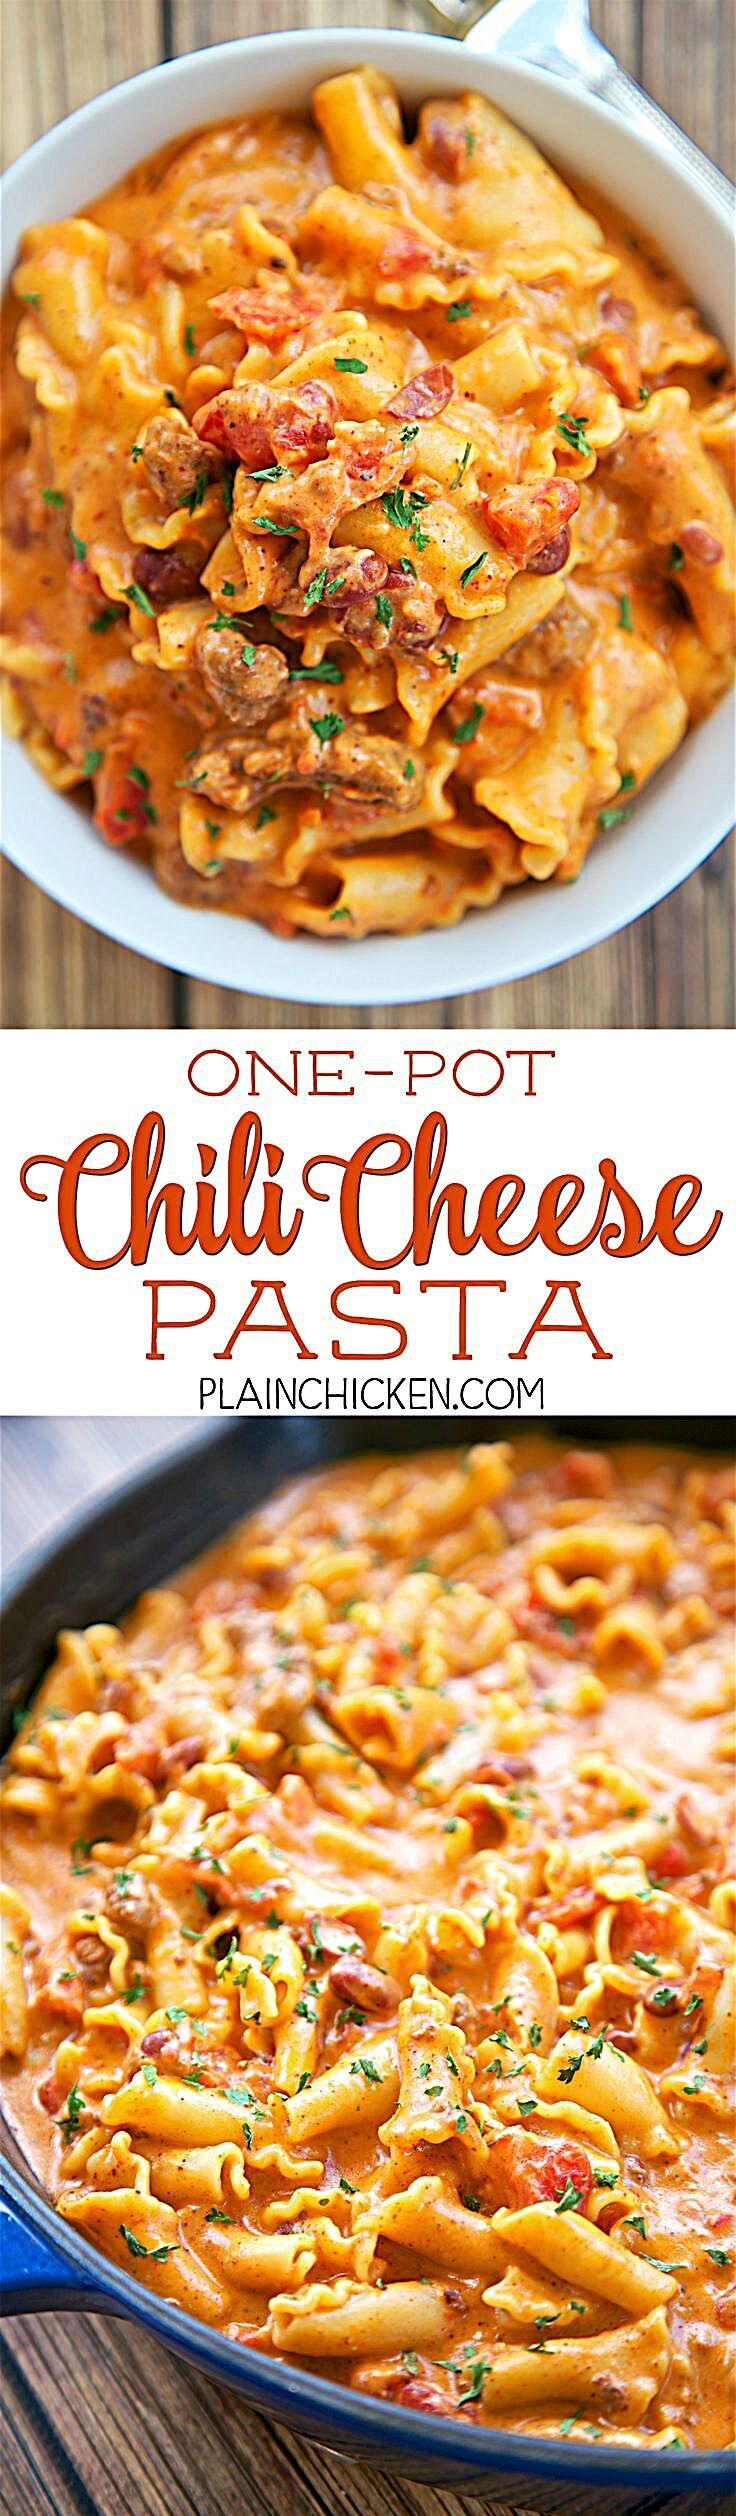 - One Pot Chili Cheese Pasta - everything cooks in the same skillet, even the pasta!! Canned chili,...